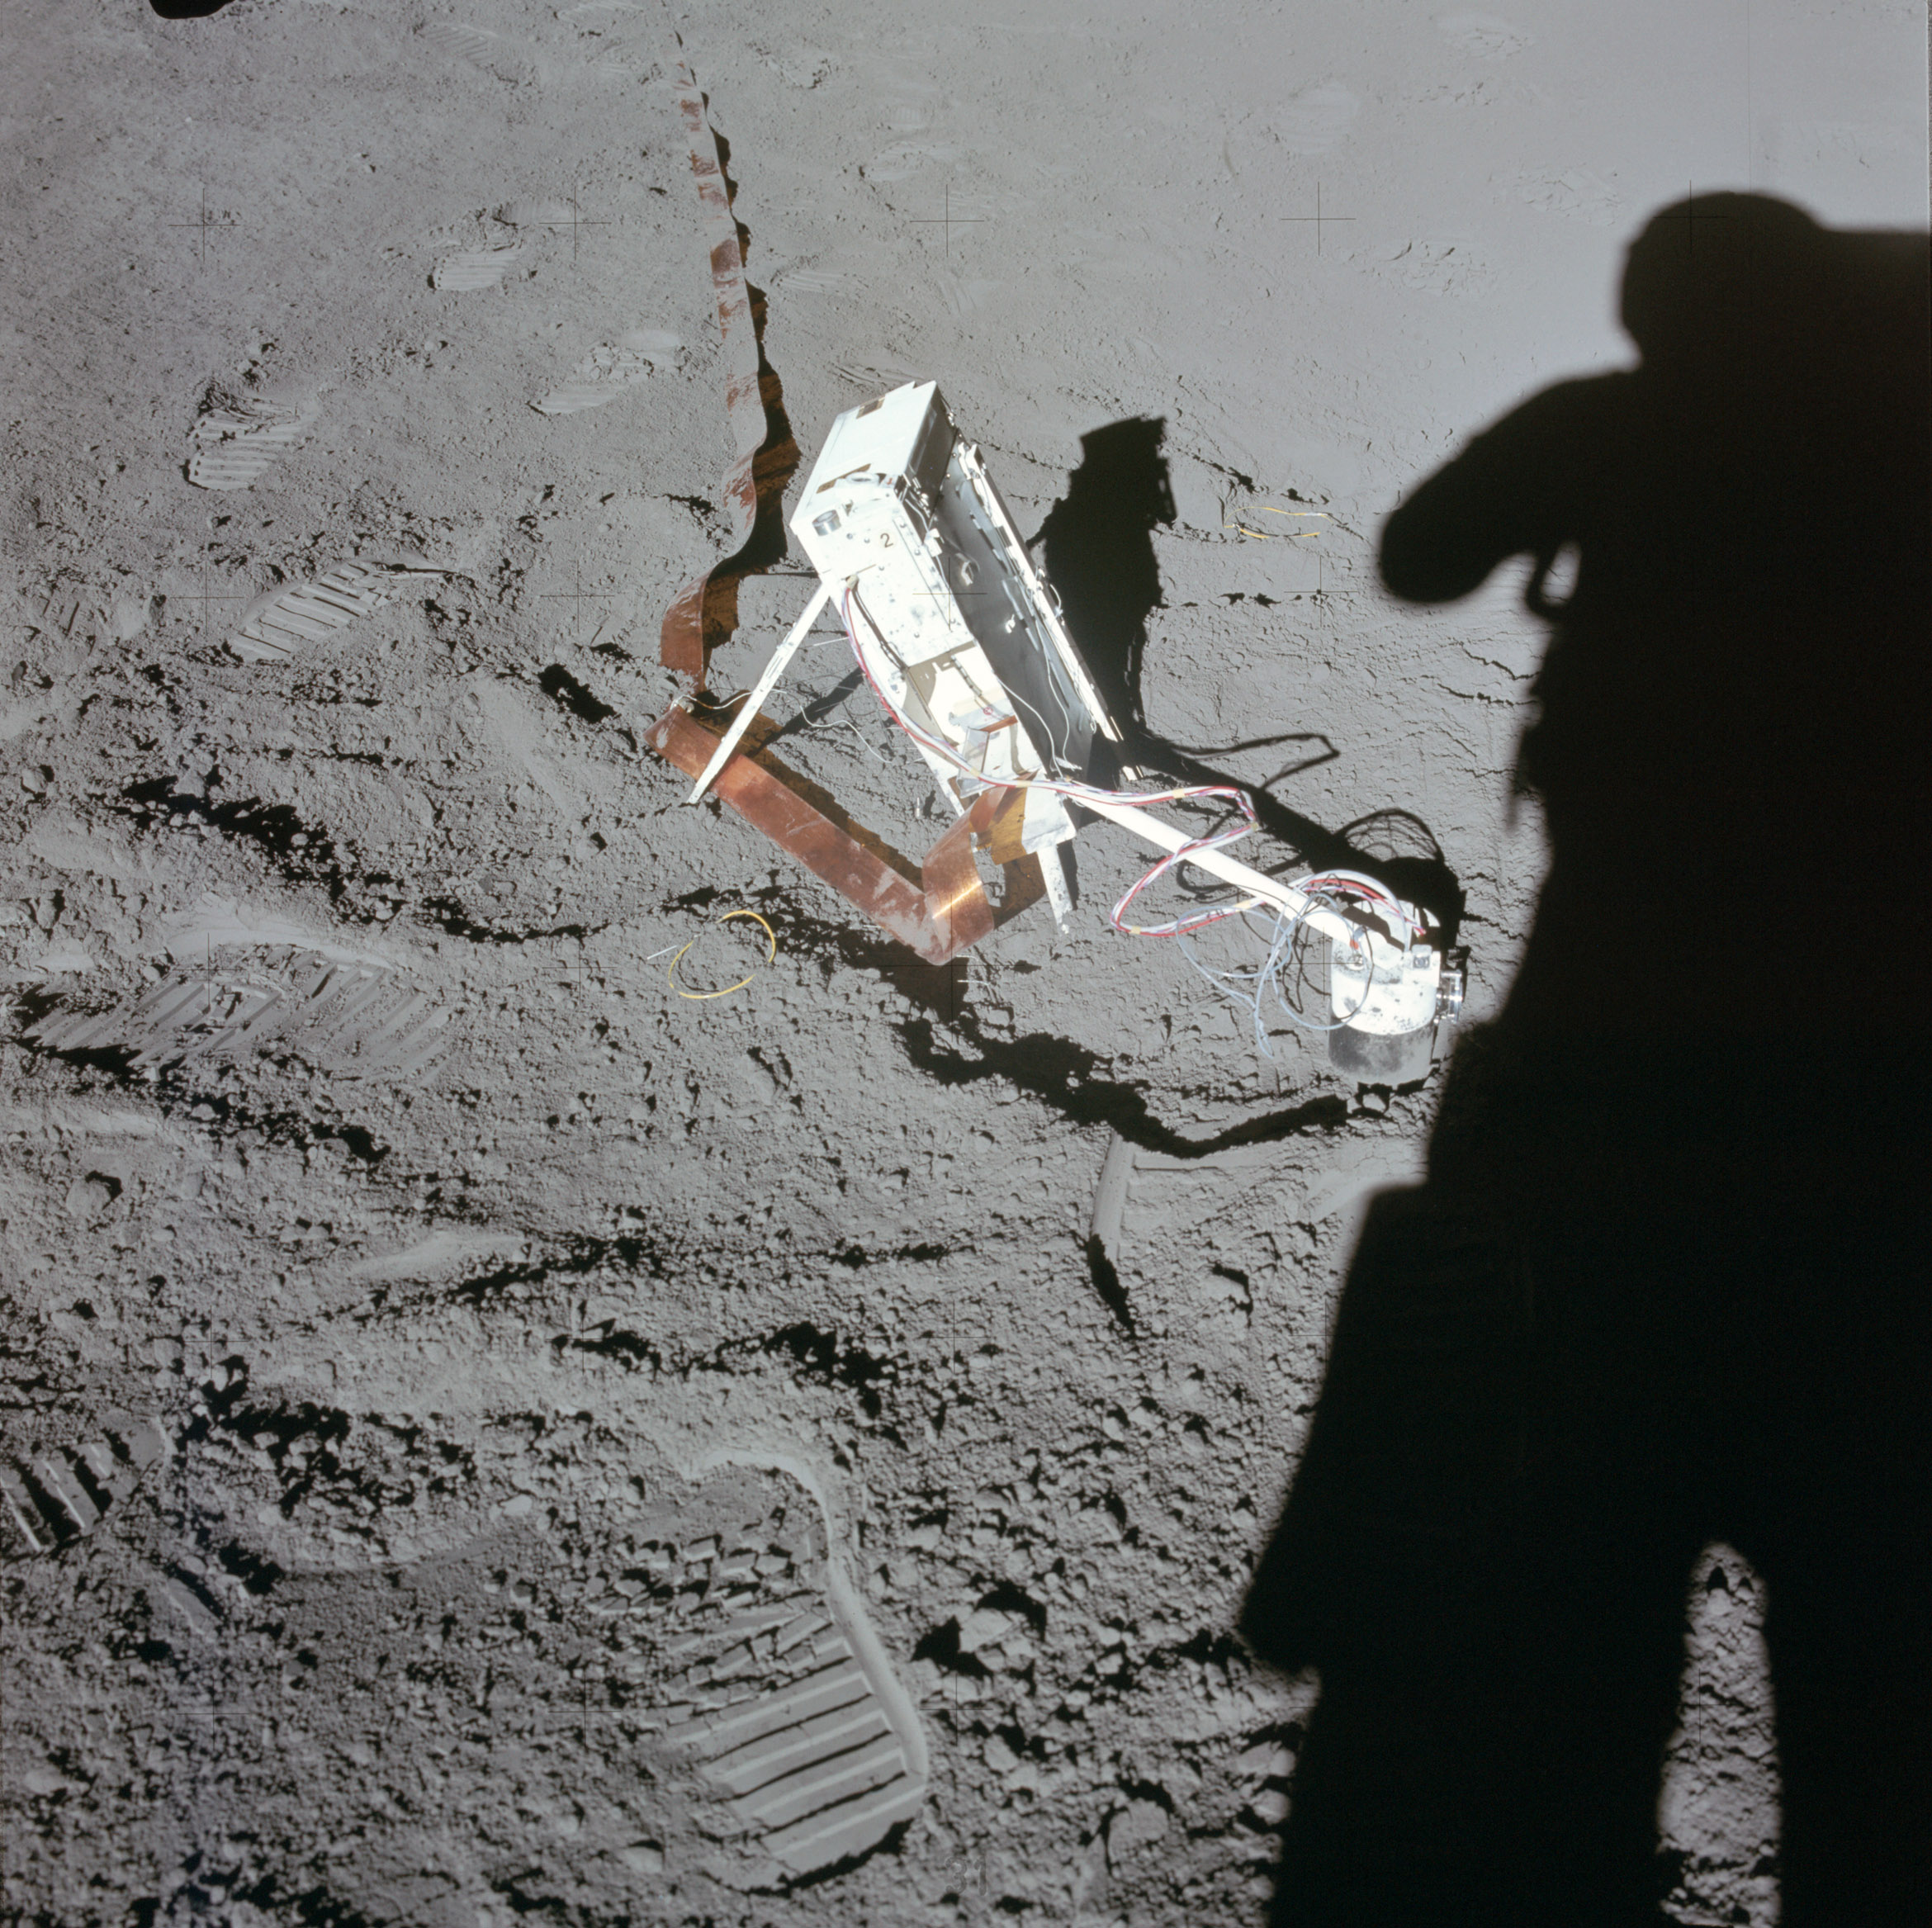 _images/apollo15-SIDE_CCIG.jpg